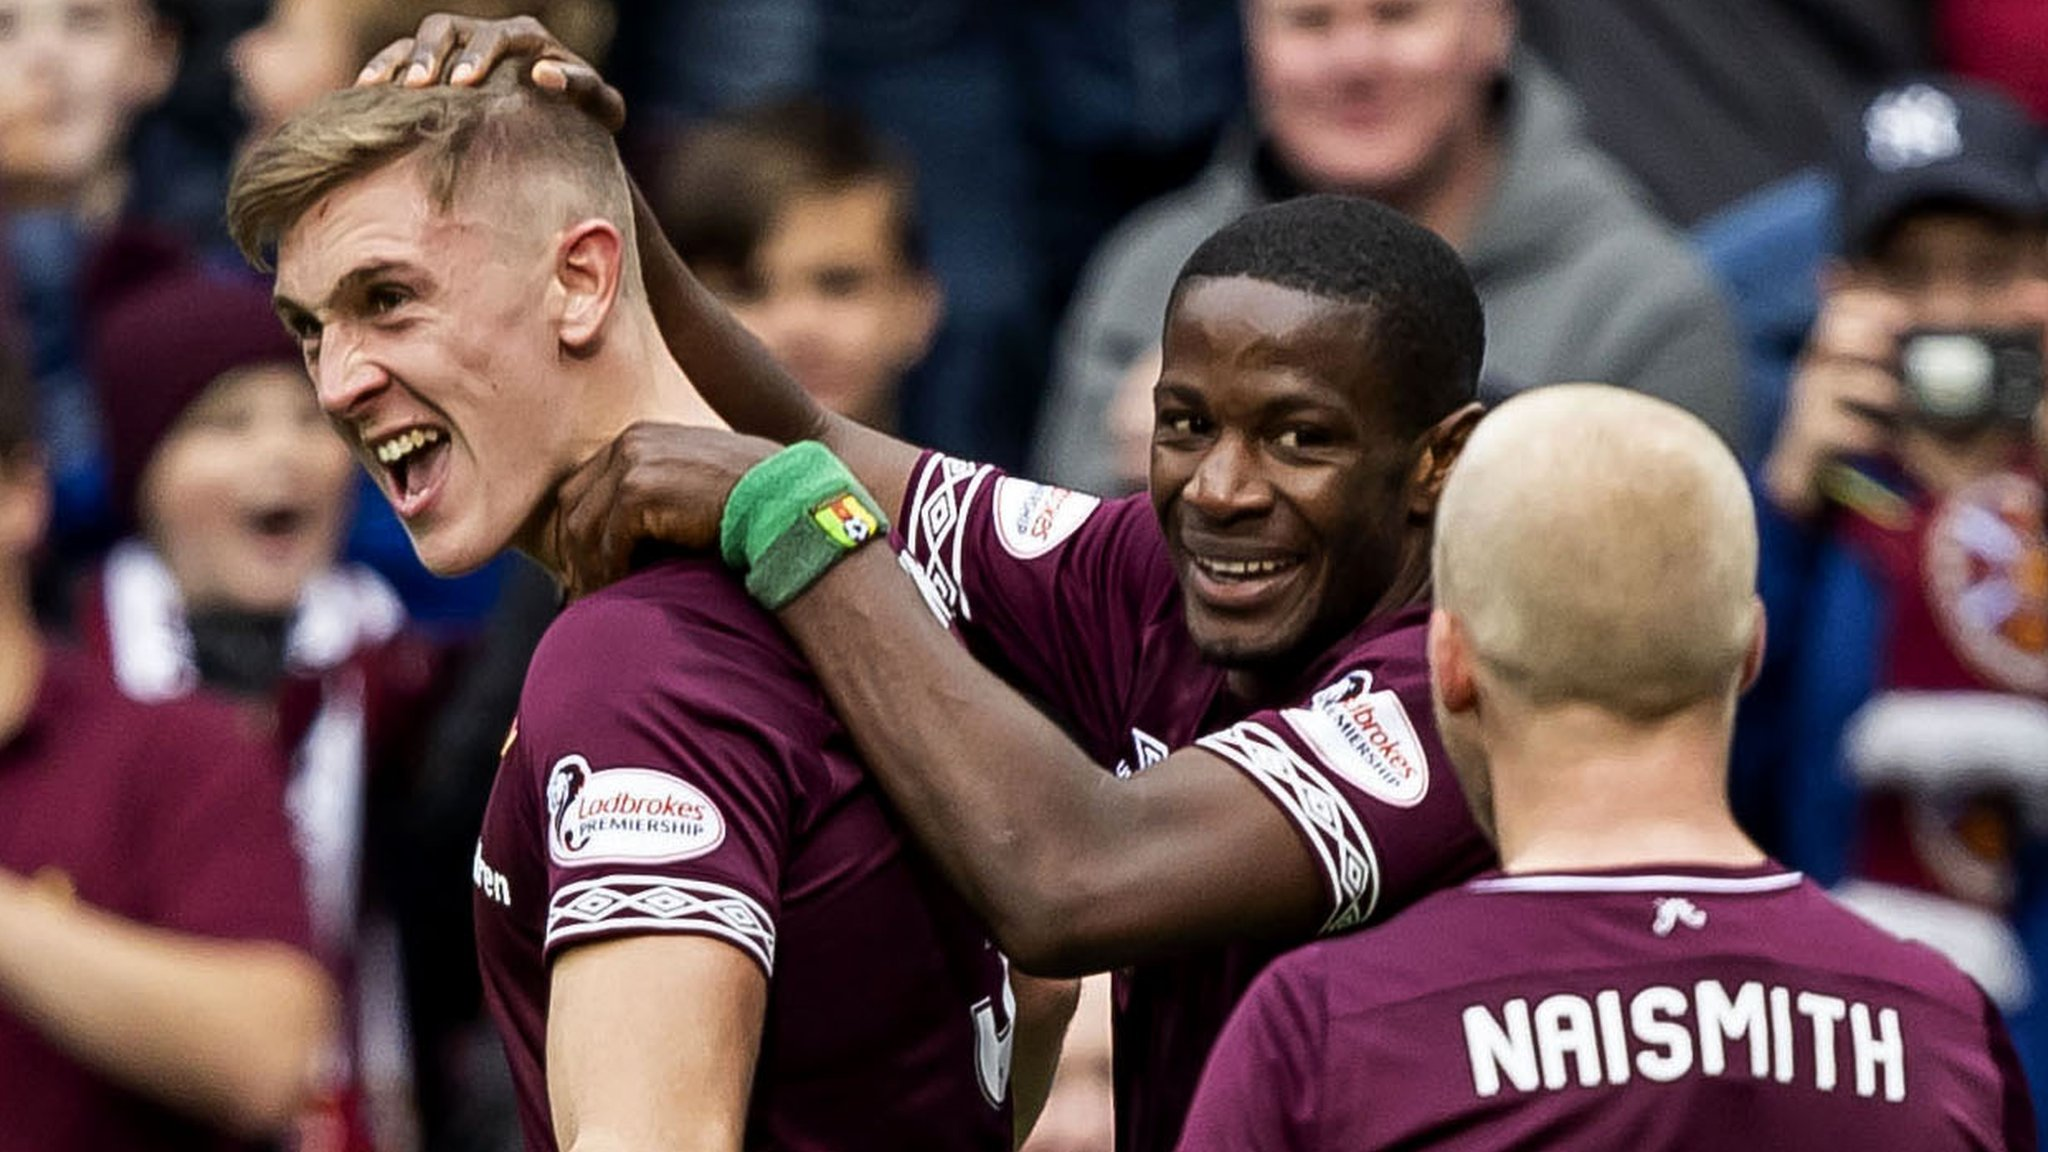 Craig Levein: Hearts 'ready and capable of getting points' at Rangers